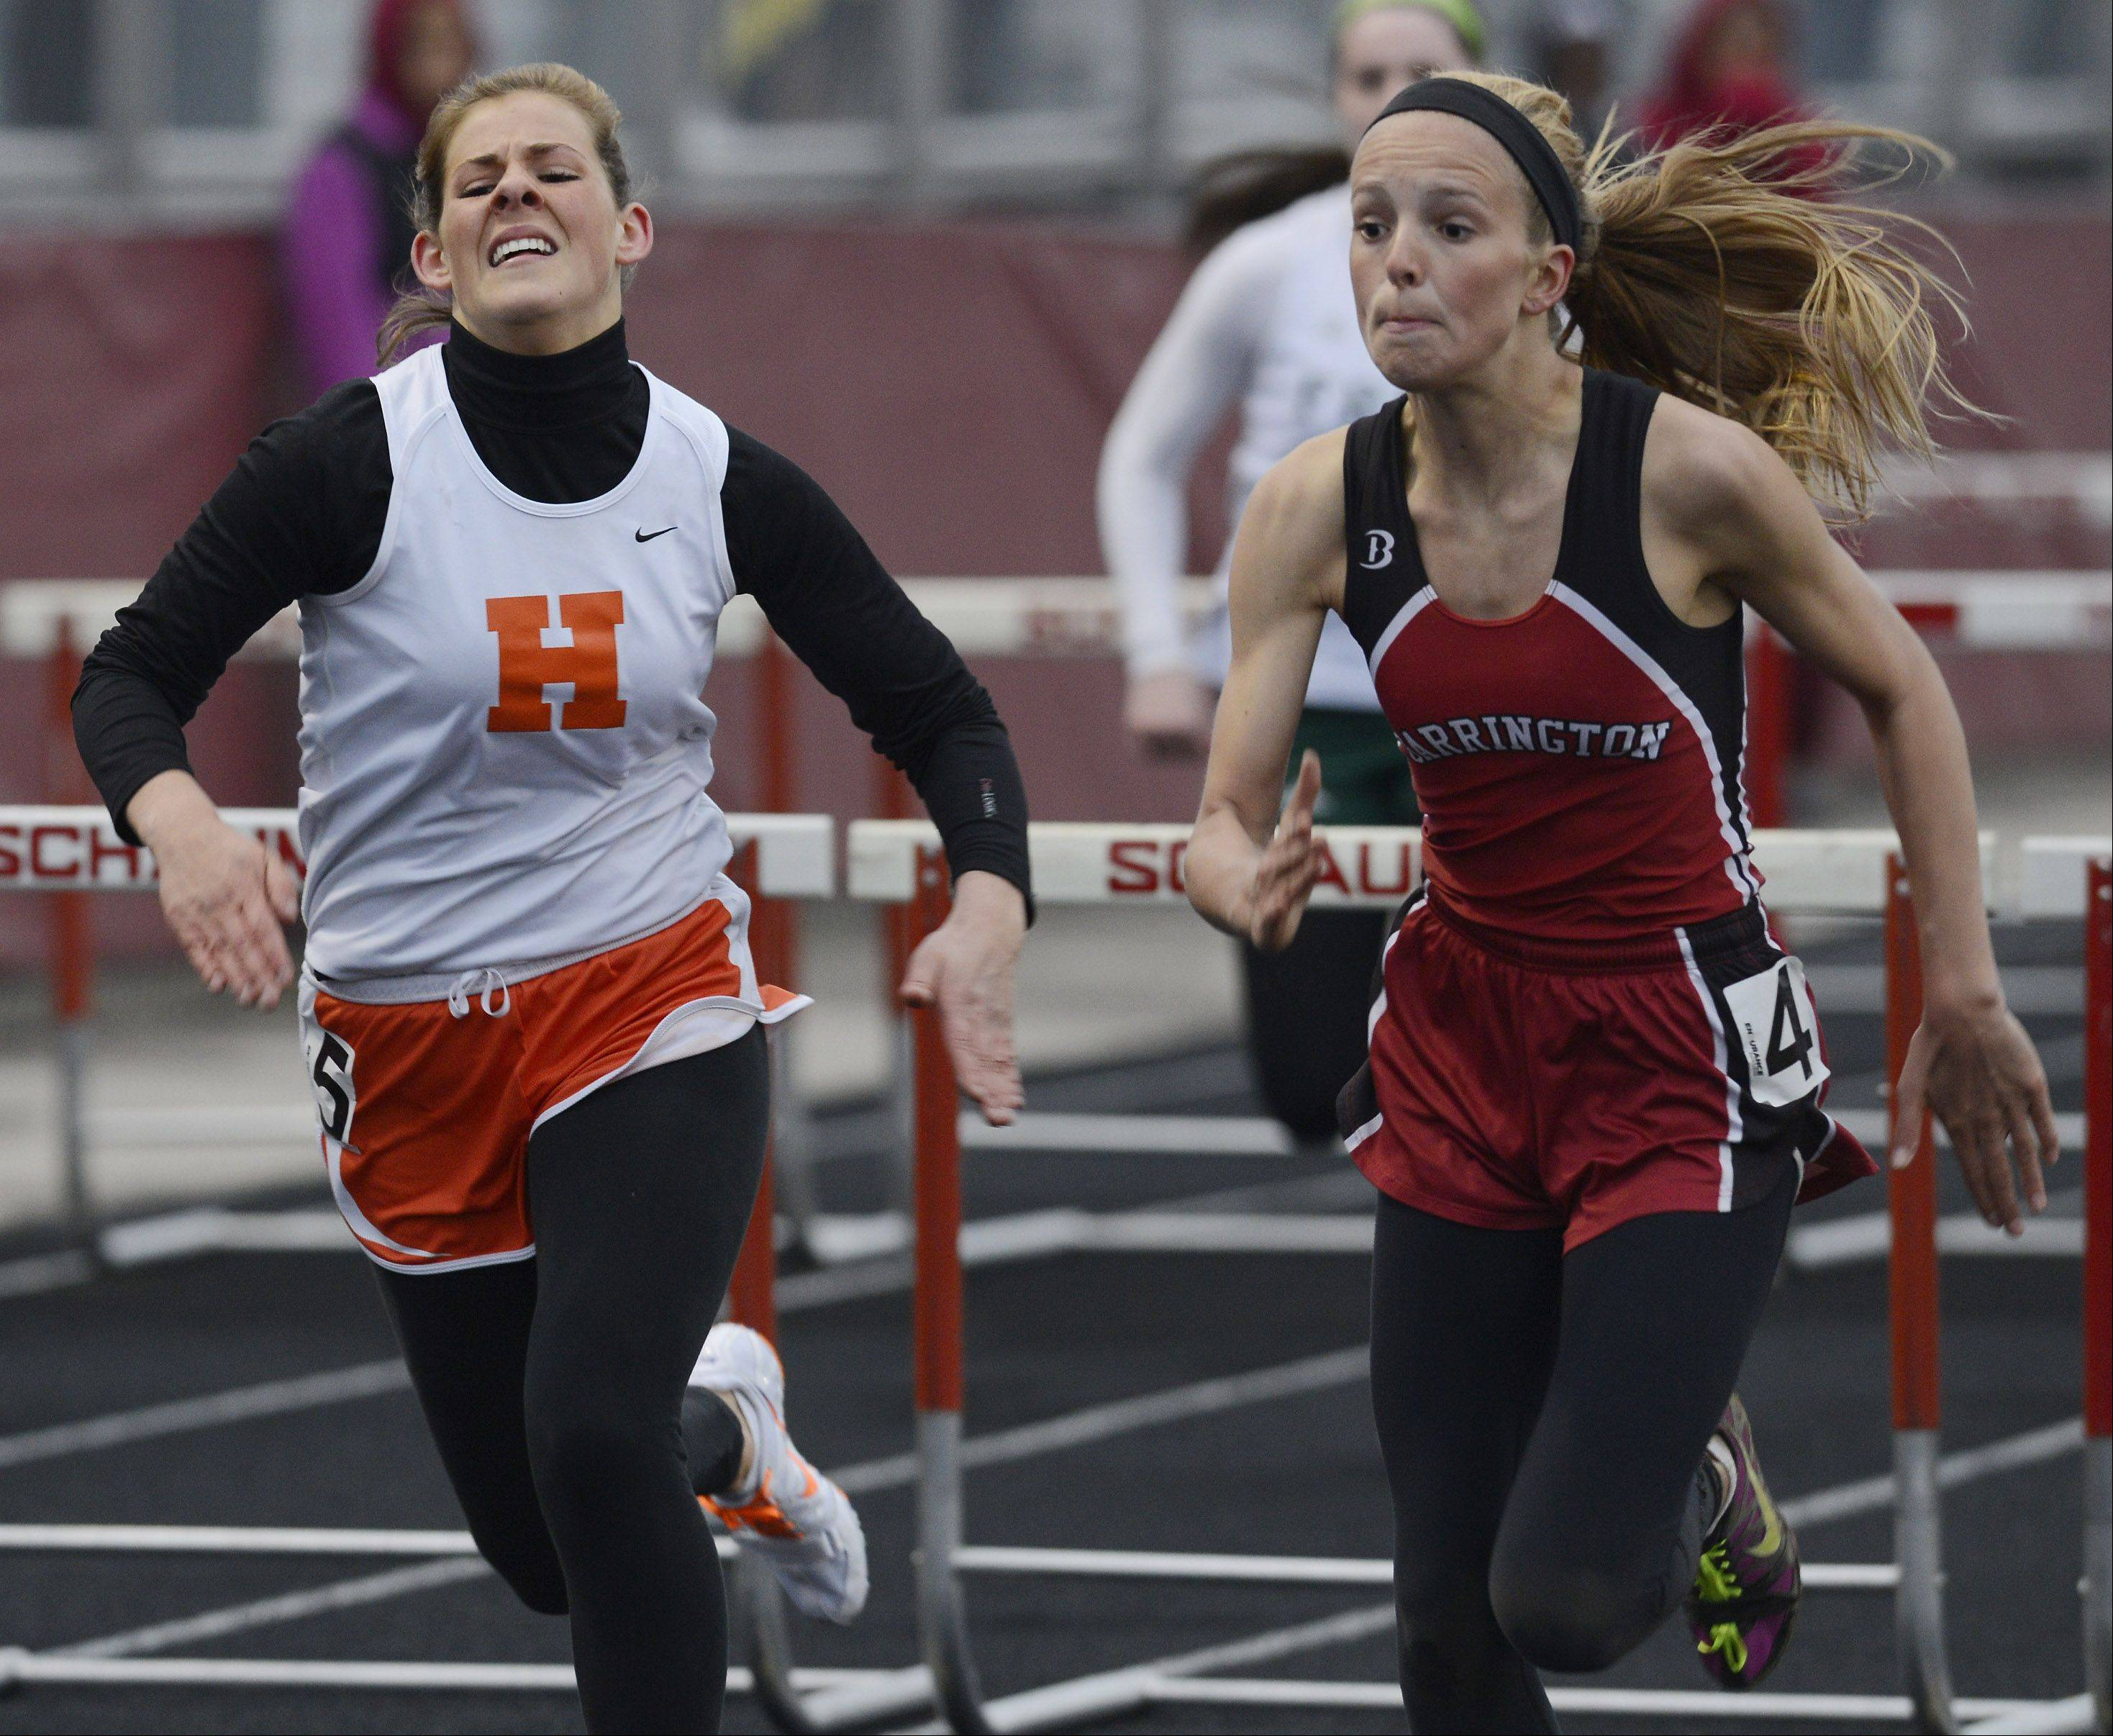 Barrington's McCall Braun, right, finishes just ahead of Hersey's Michelle Brown in the 110-meter high hurdles during the Mid-Suburban League girls track meet at Schaumburg on Friday.